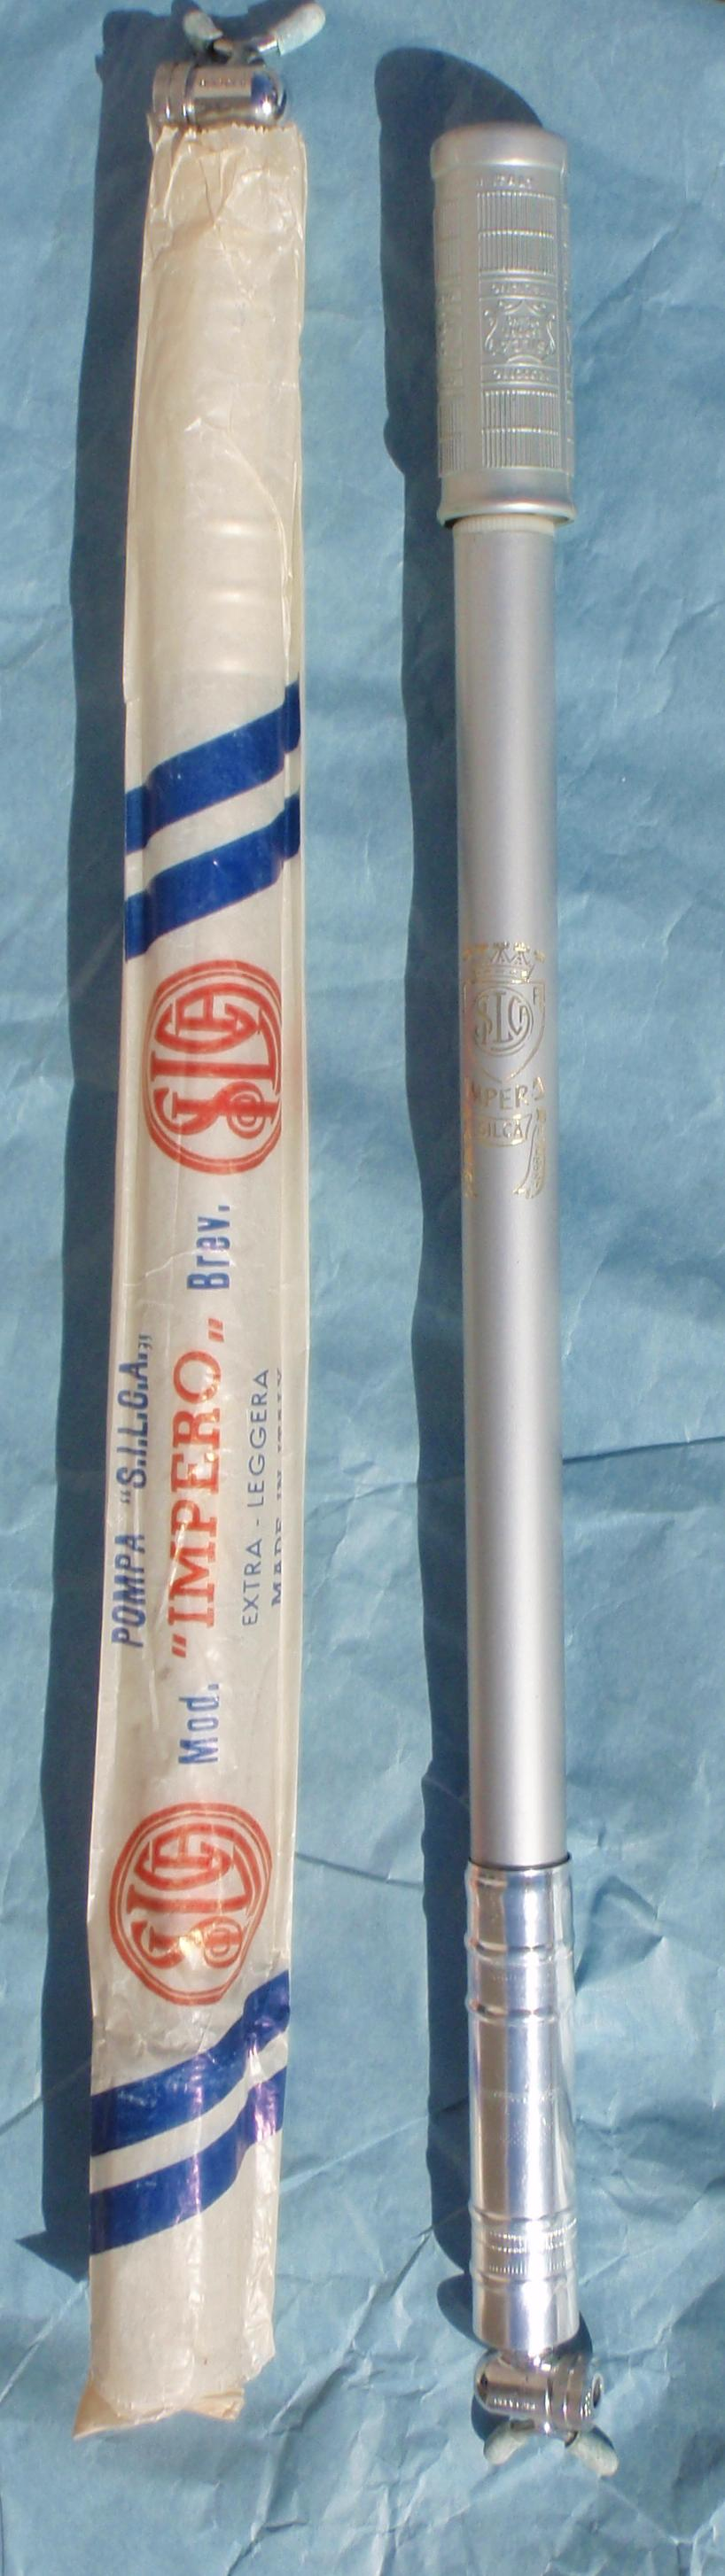 w//o Pump-Head New-Old-Stock White Silca Impero Frame-Fit Pump...Size 56cm